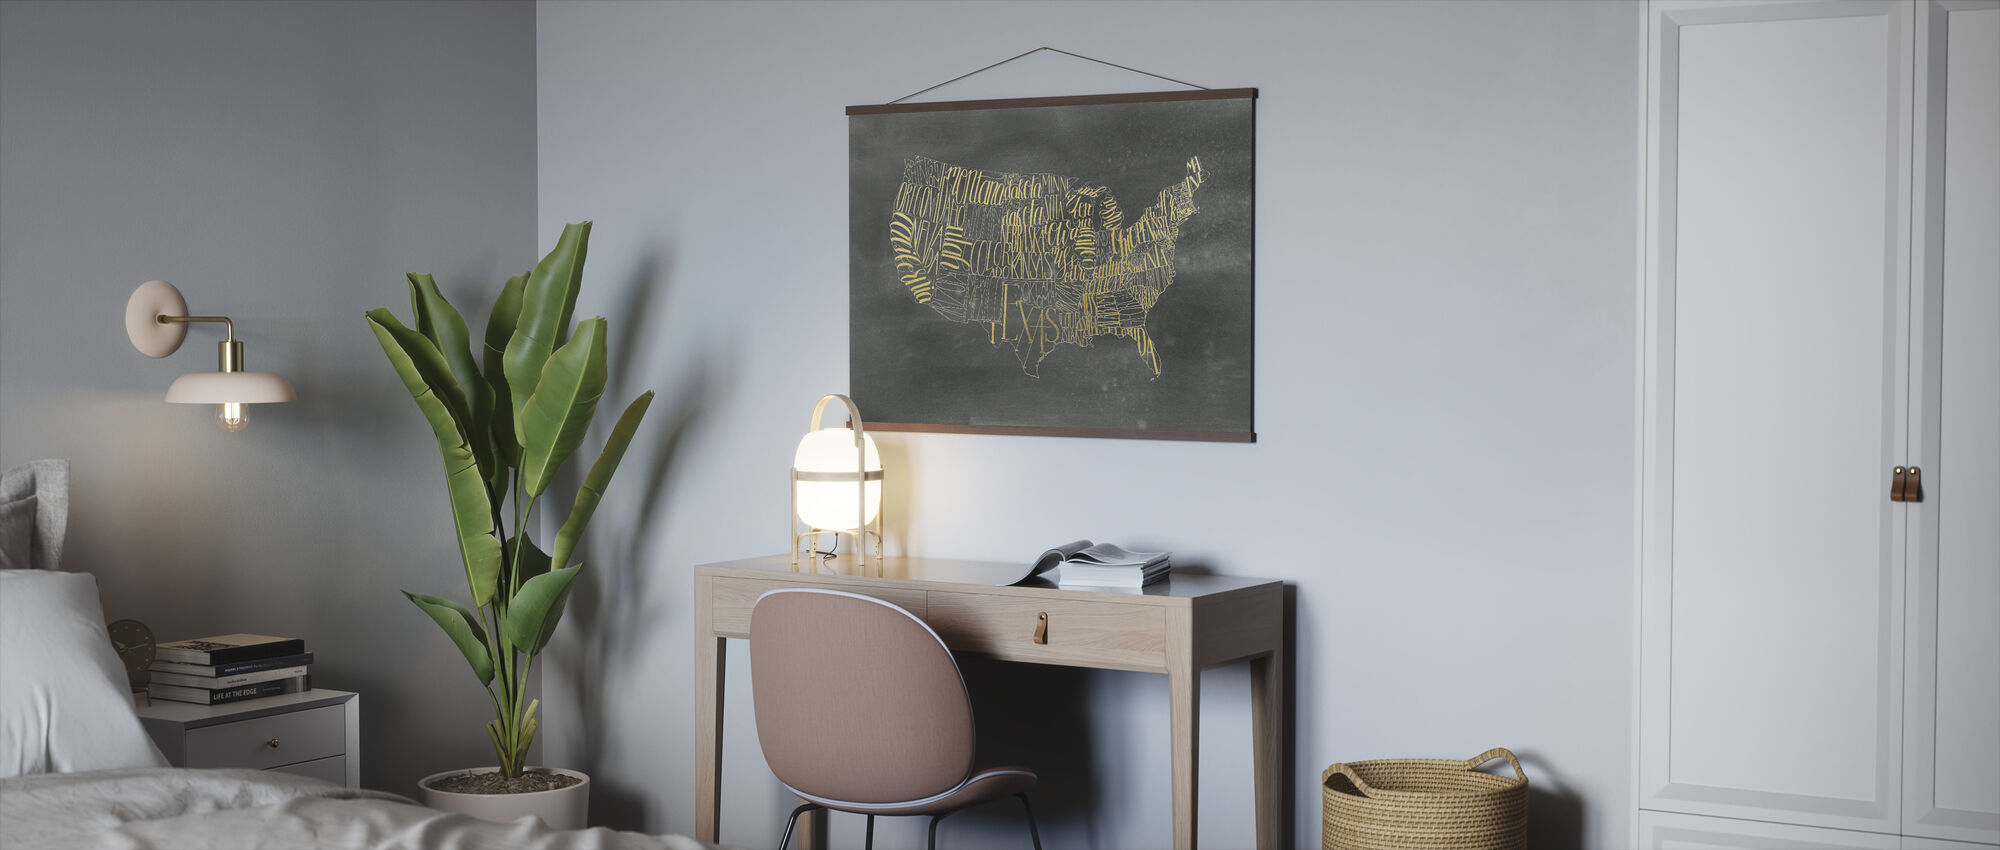 USA Map on Black Wash - Poster - Office